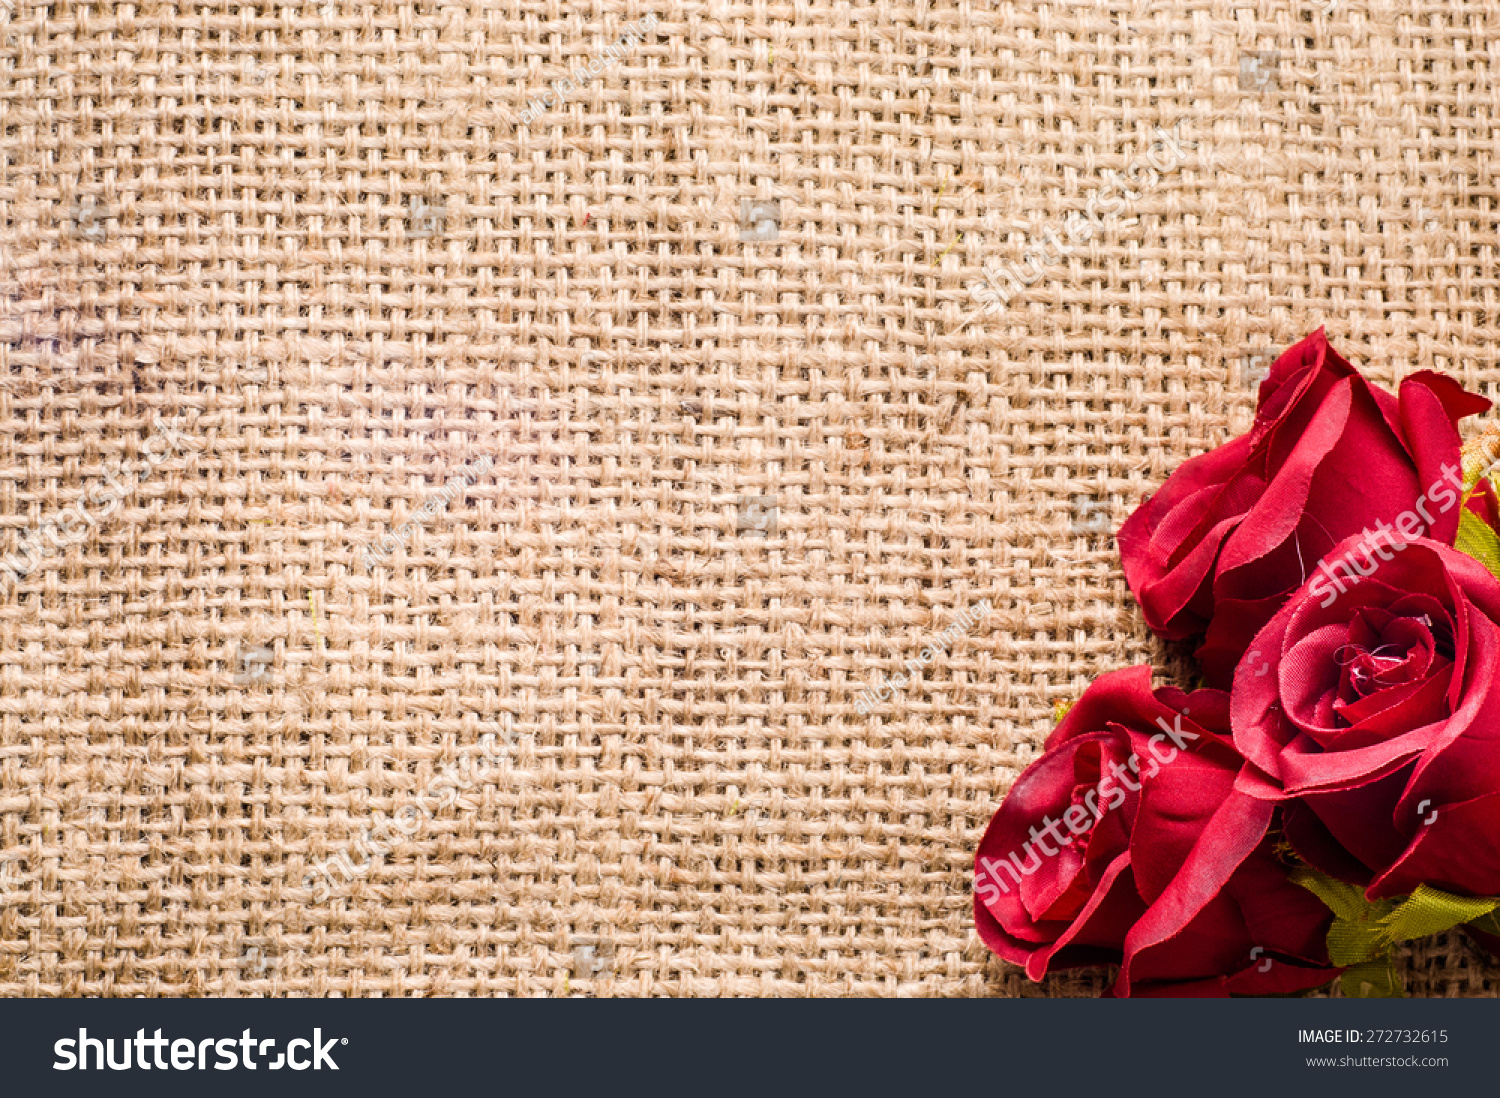 Romantic red roses backgrounds mothers day stock photo 272732615 romantic red roses backgrounds mothers day wedding invitation greetings card anniversary cards kristyandbryce Images